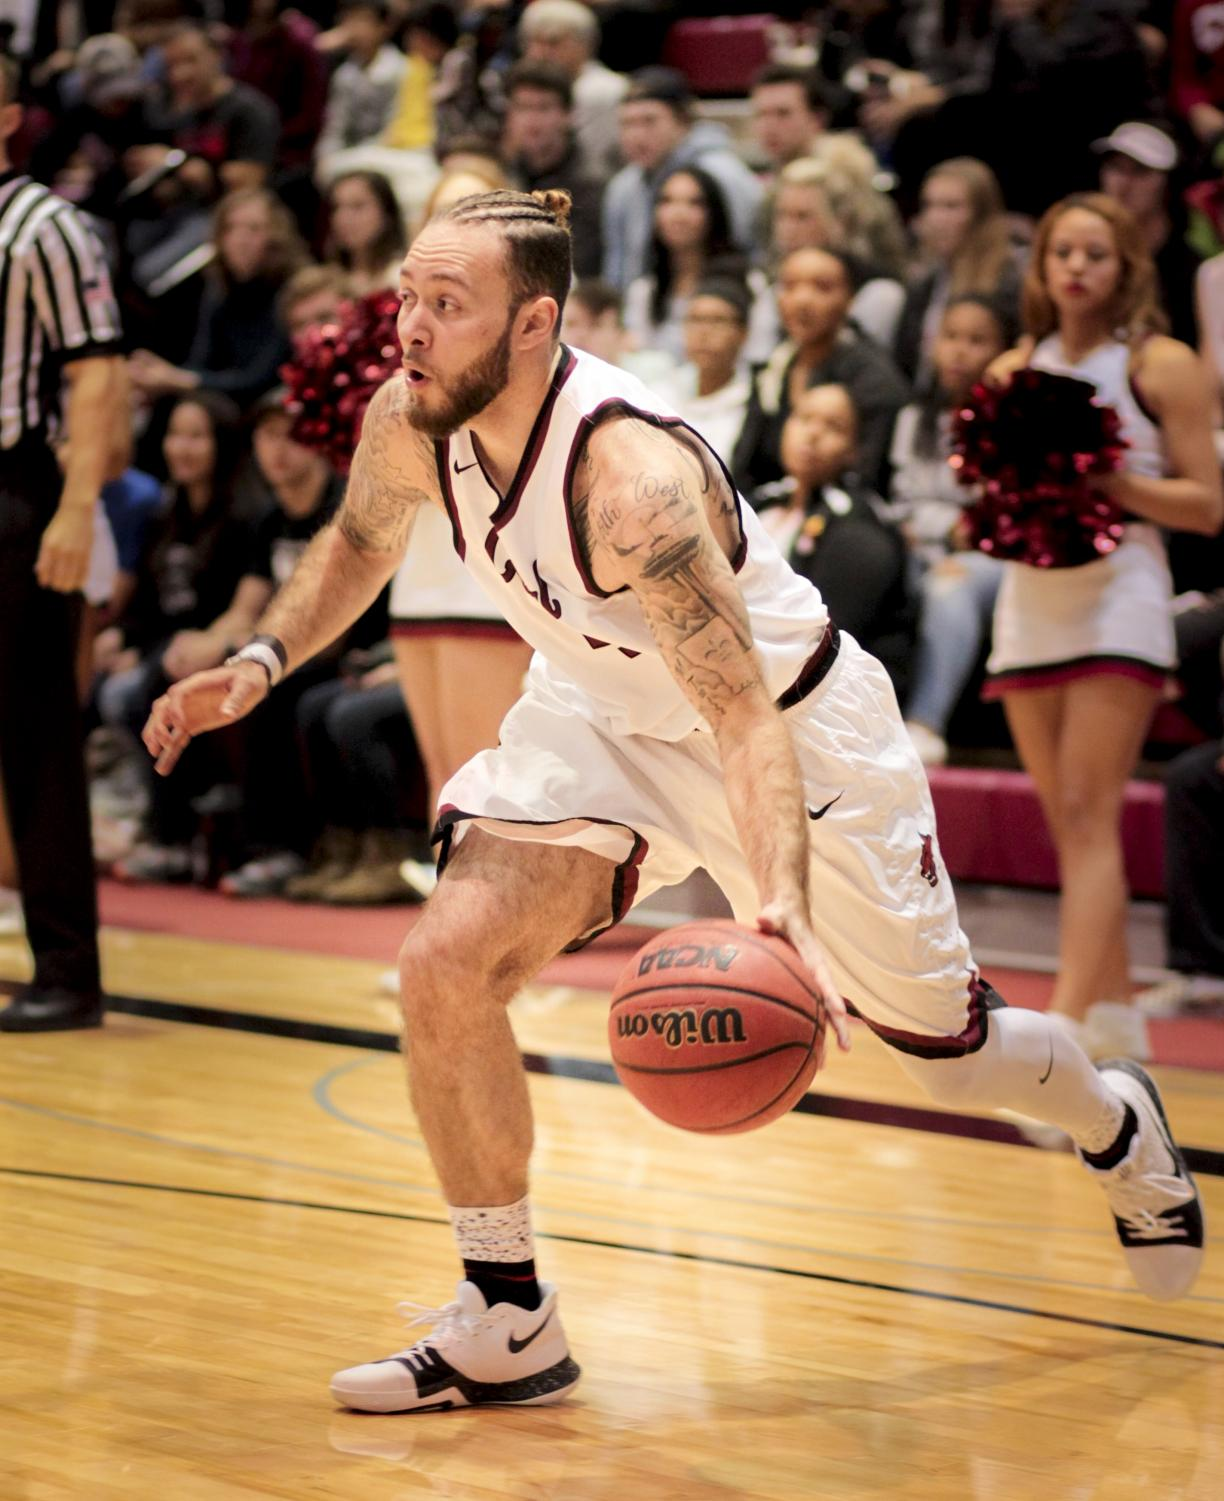 Malik Montoya dribbles during CWU's first home game of the season.